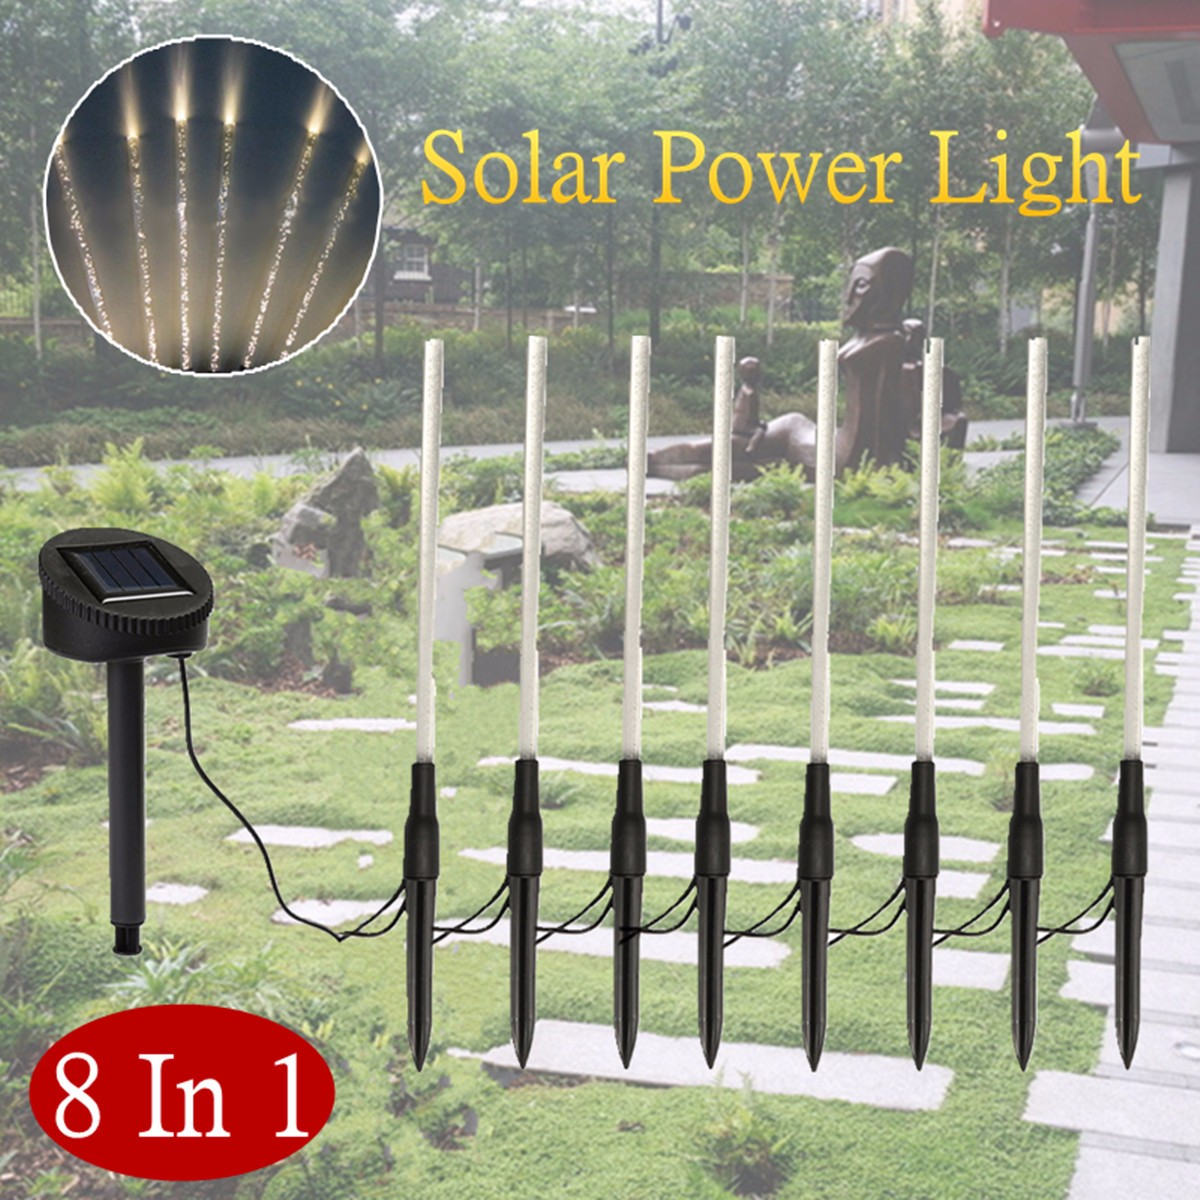 8 In 1 Acrylic LED Solar Powered Light Warm White Outdoor Garden Decorative Flood Lighting Lawn Lamp Waterproof Spot Lights css rechargeable waterproof solar powered 30 led spot light white lamp with lithium battery inside for lawn garden road hot